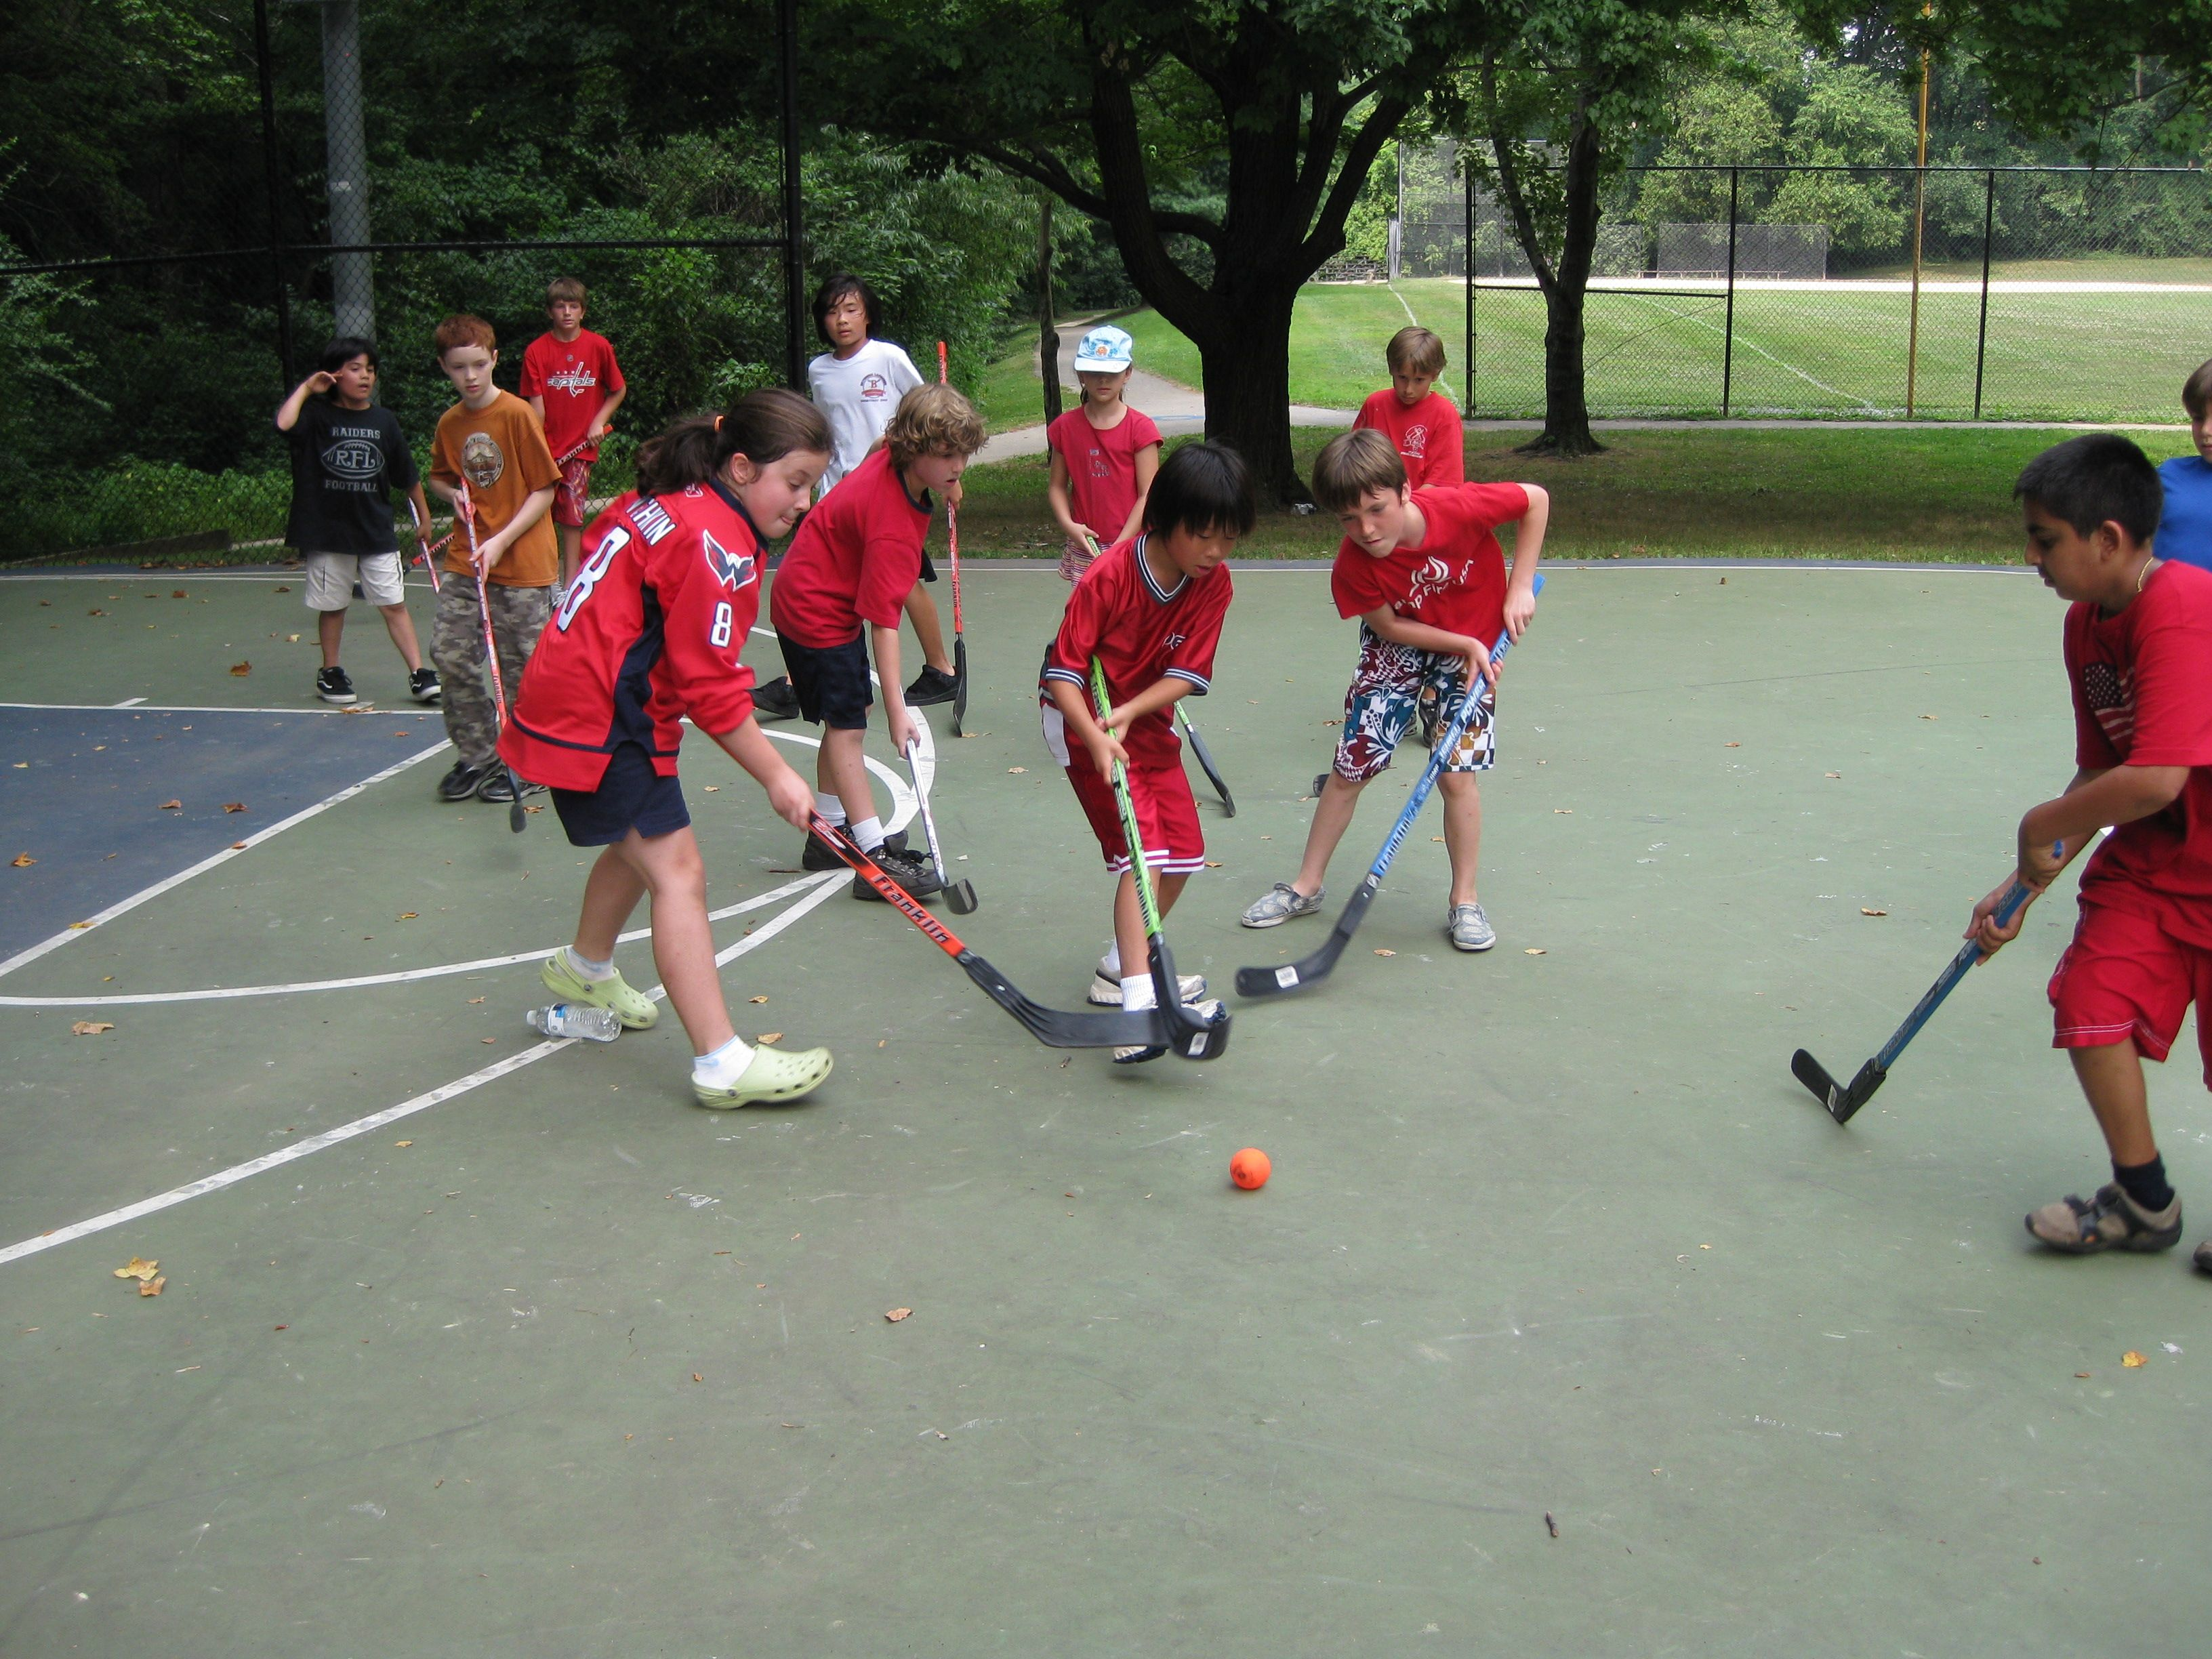 Multisports Camps Playing Street Hockey Register At Http Www Rockvillemd Gov Camps Street Hockey Summer Camp Camping